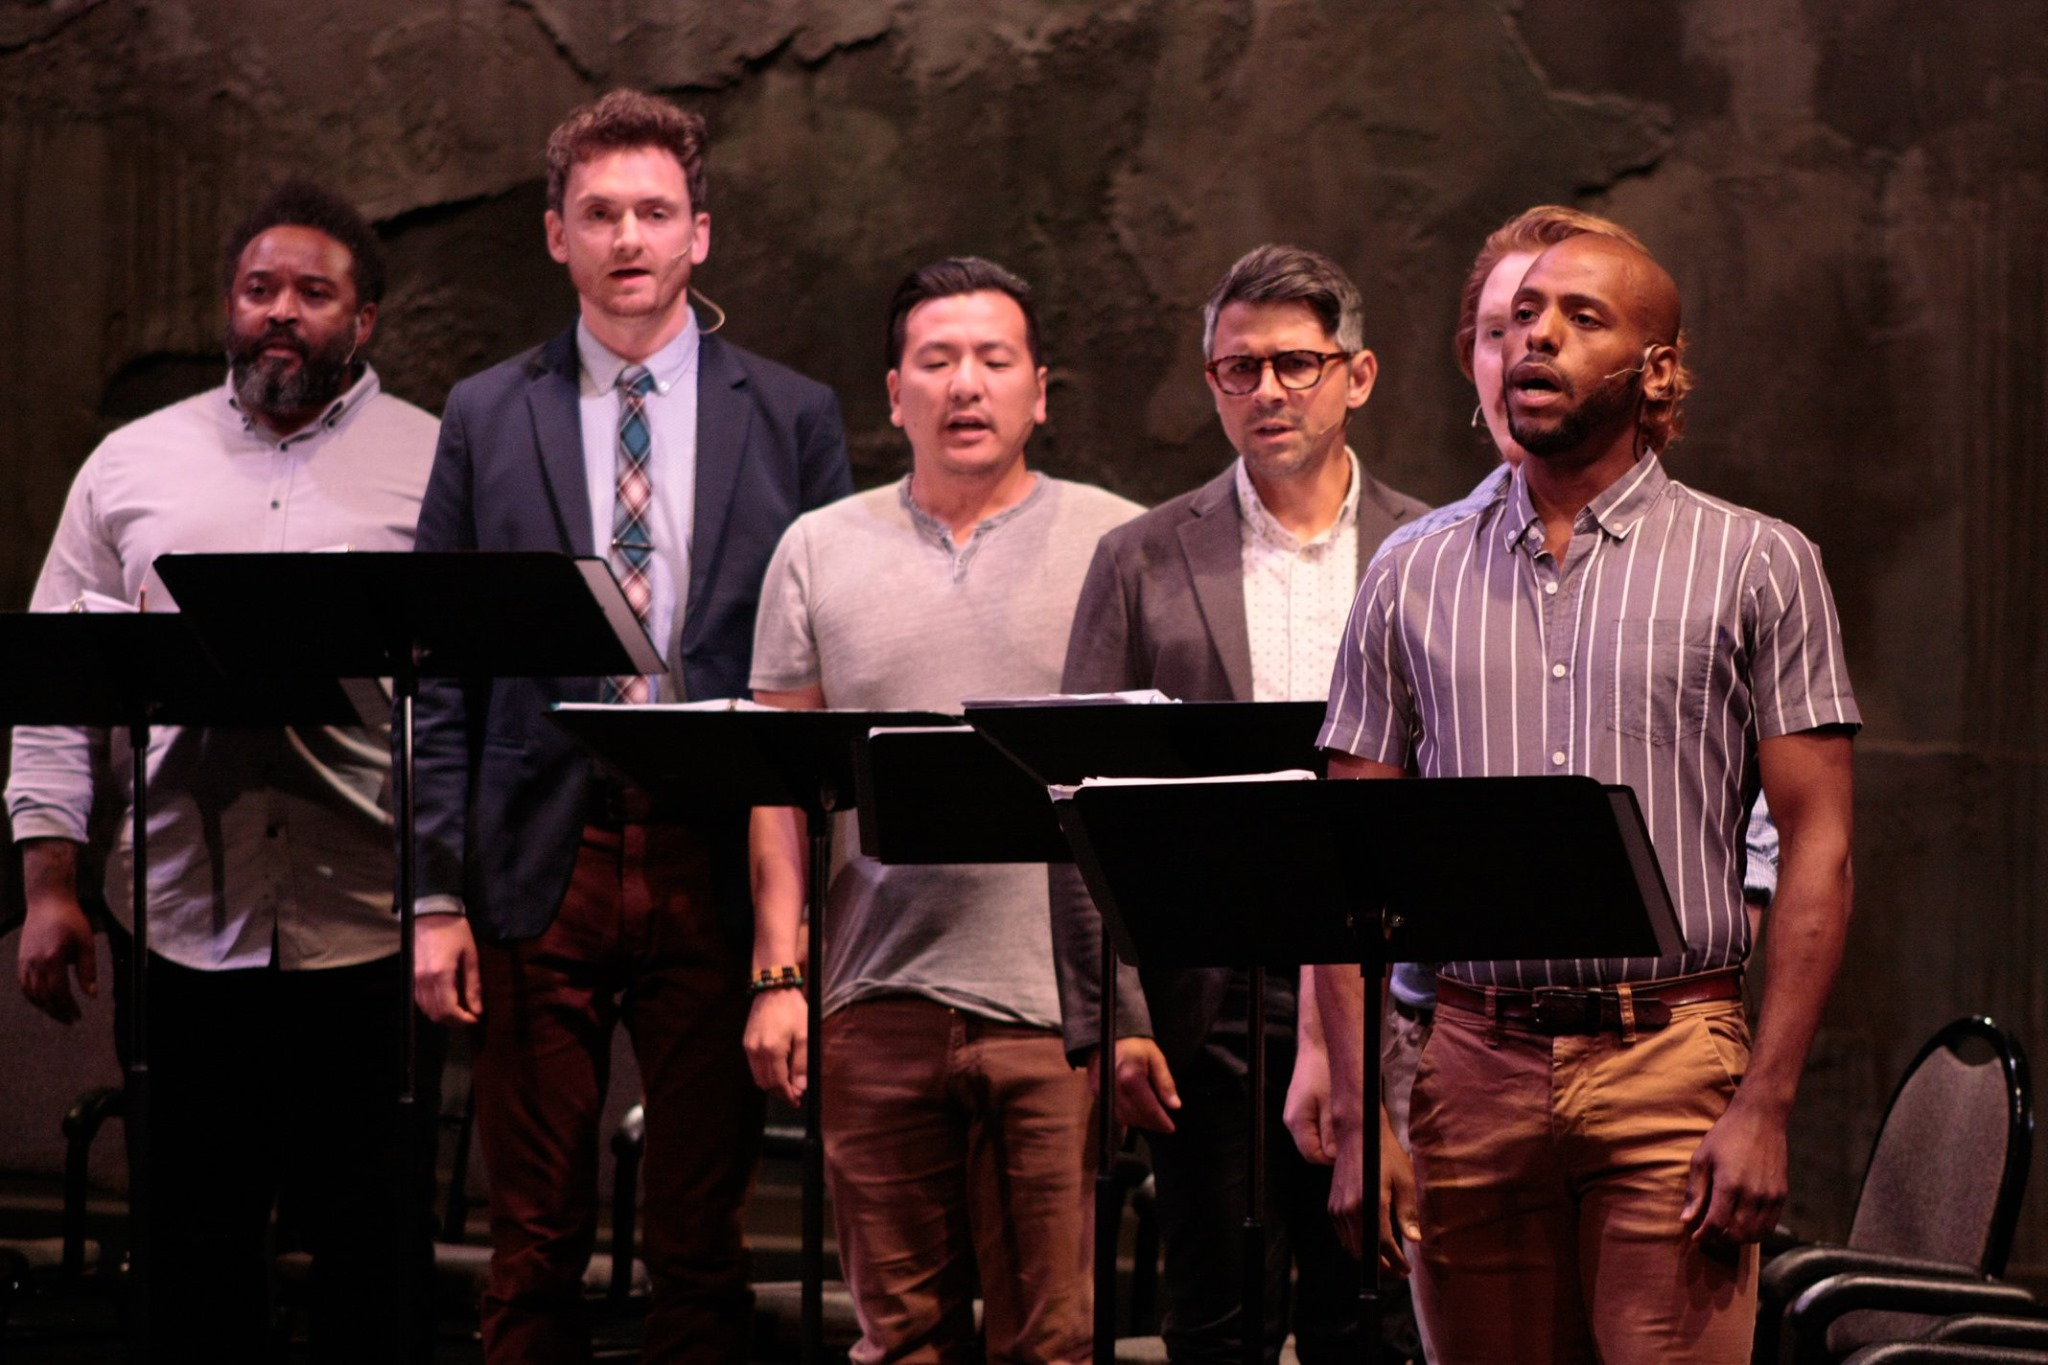 NEXT Festival 2019 -  Twelve Angry Men.  Pictured (L-R): André Shoals, Riley McNutt, Brian Kim, Sasha Andreev, Matt Riehle, Jon-Michael Reese. Photo by Andrew Leshovsky.